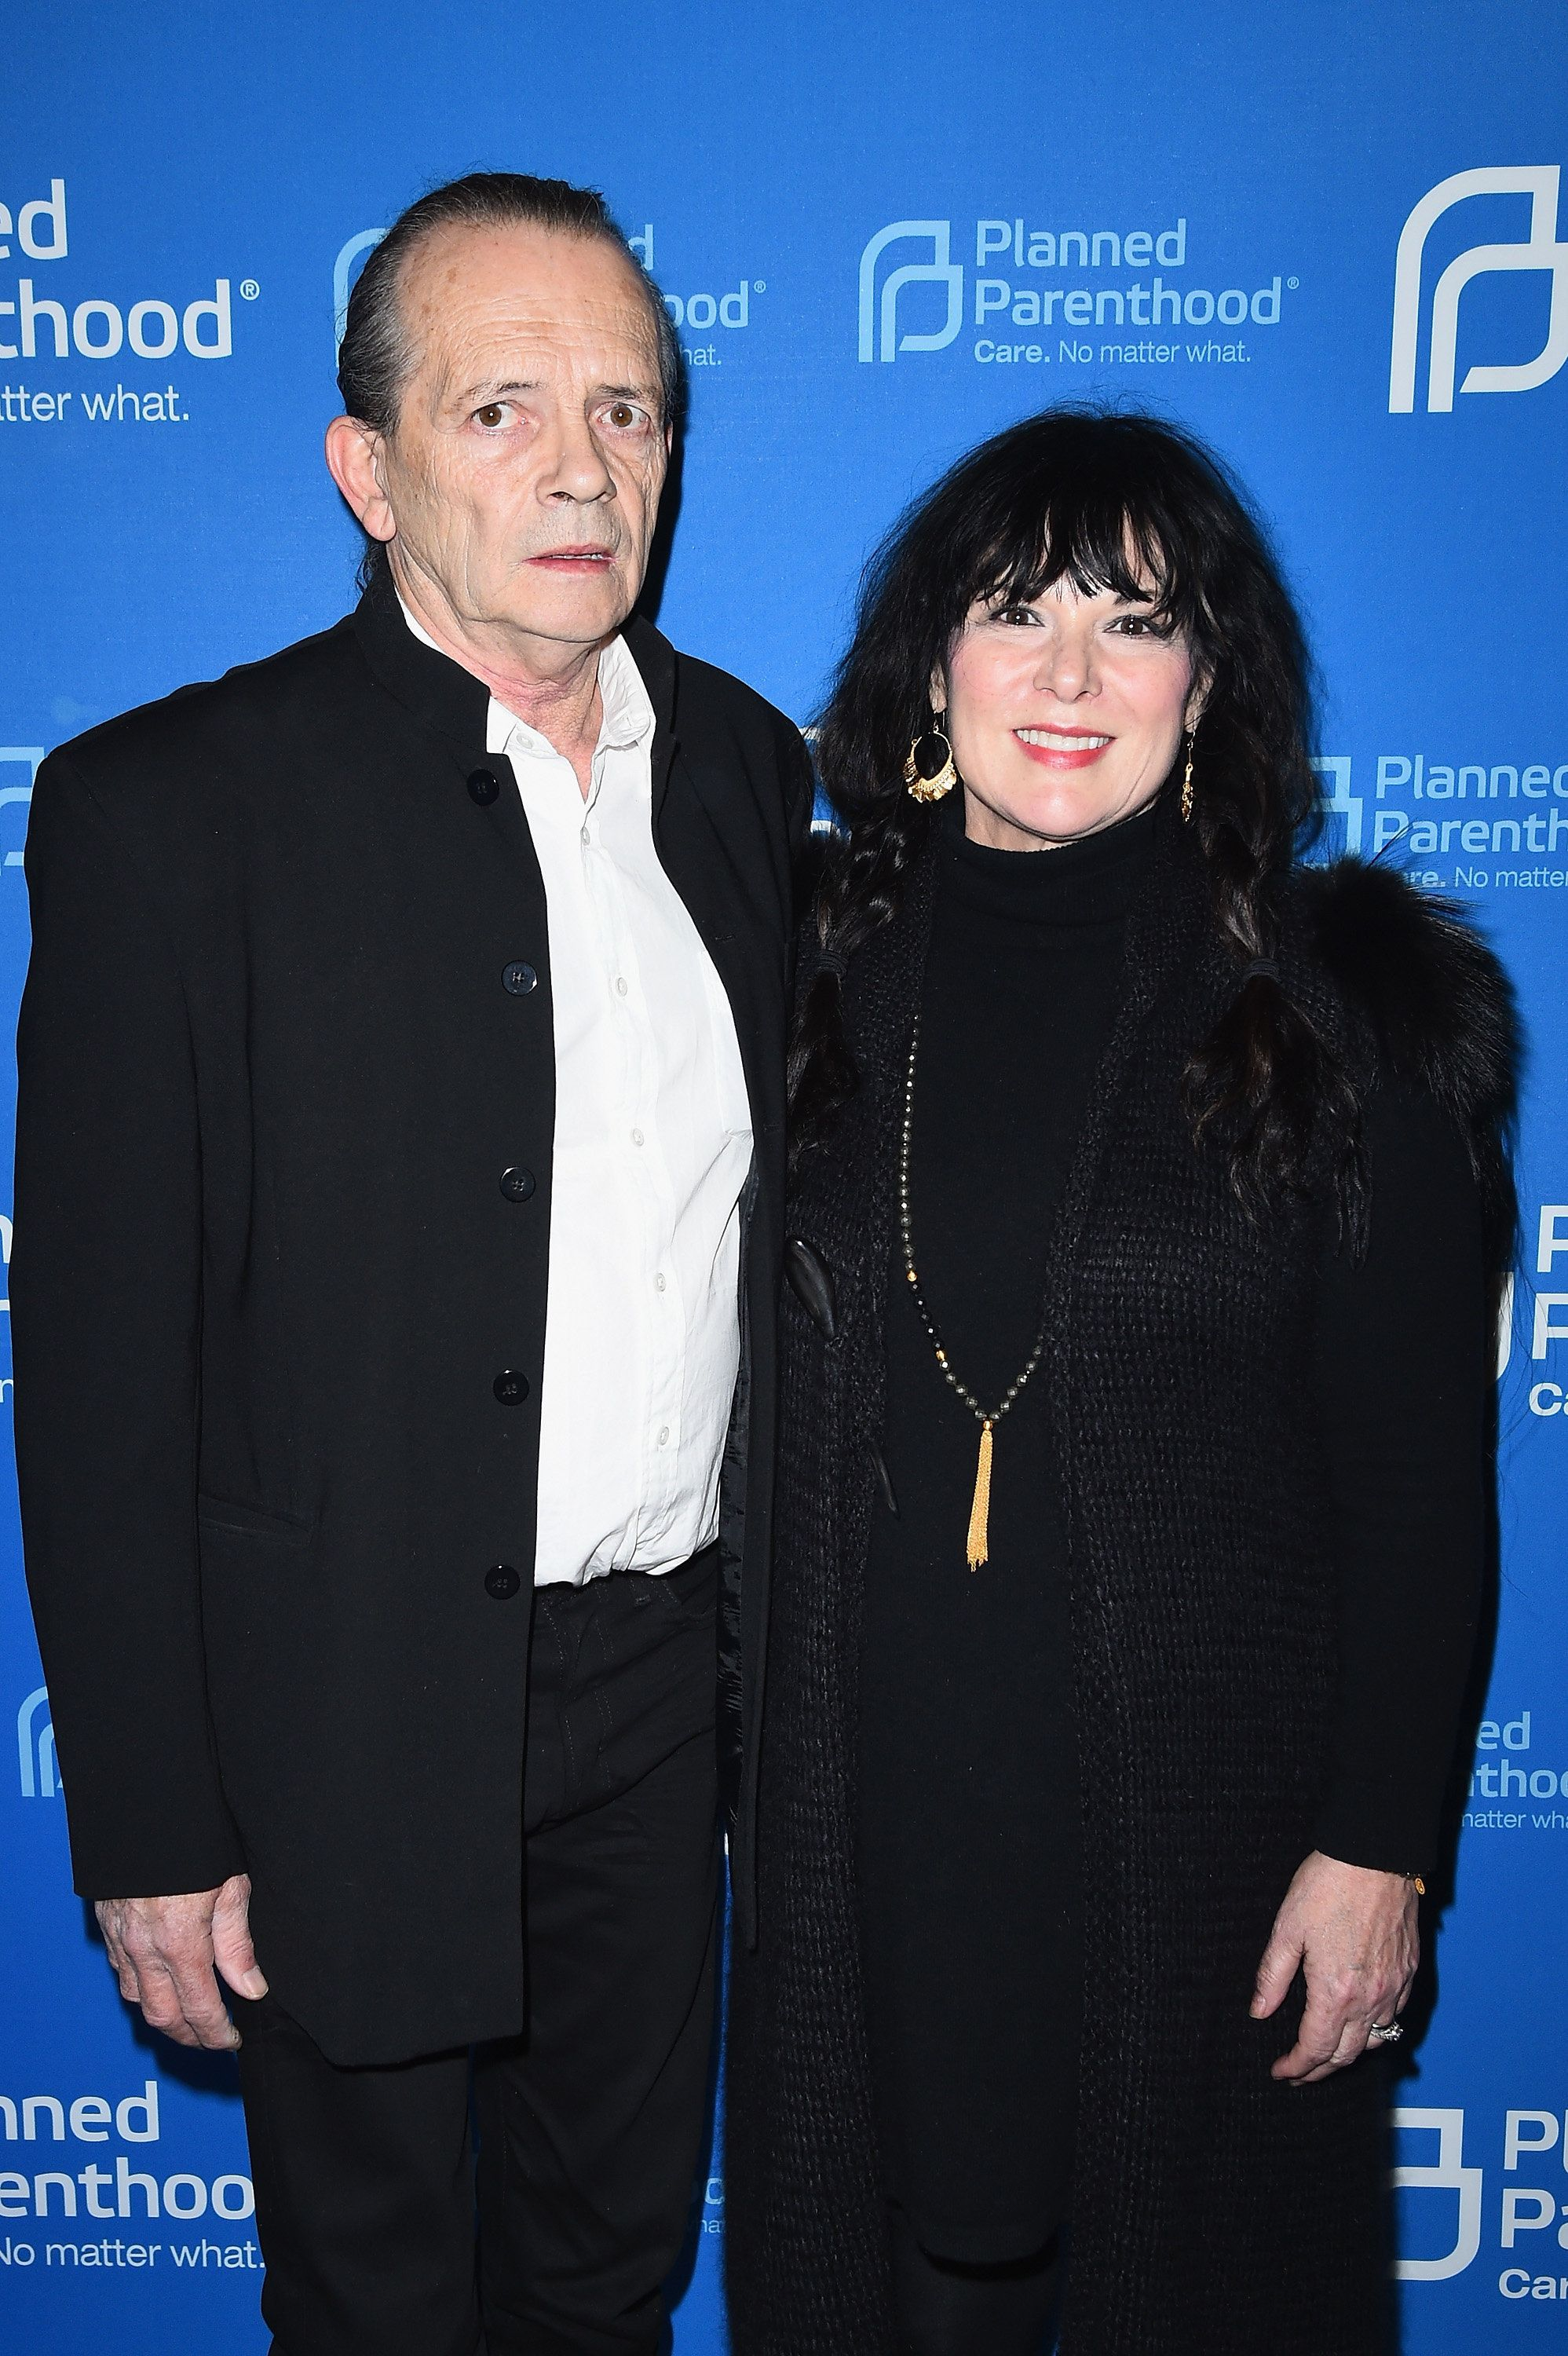 PARK CITY, UT - JANUARY 24: Dean Wetter and Ann Wilson attend the Lena Dunham and Planned Parenthood Host Sex, Politics & Film Cocktail Reception at The Spur on January 24, 2016 in Park City, Utah.  (Photo by Nicholas Hunt/Getty Images)